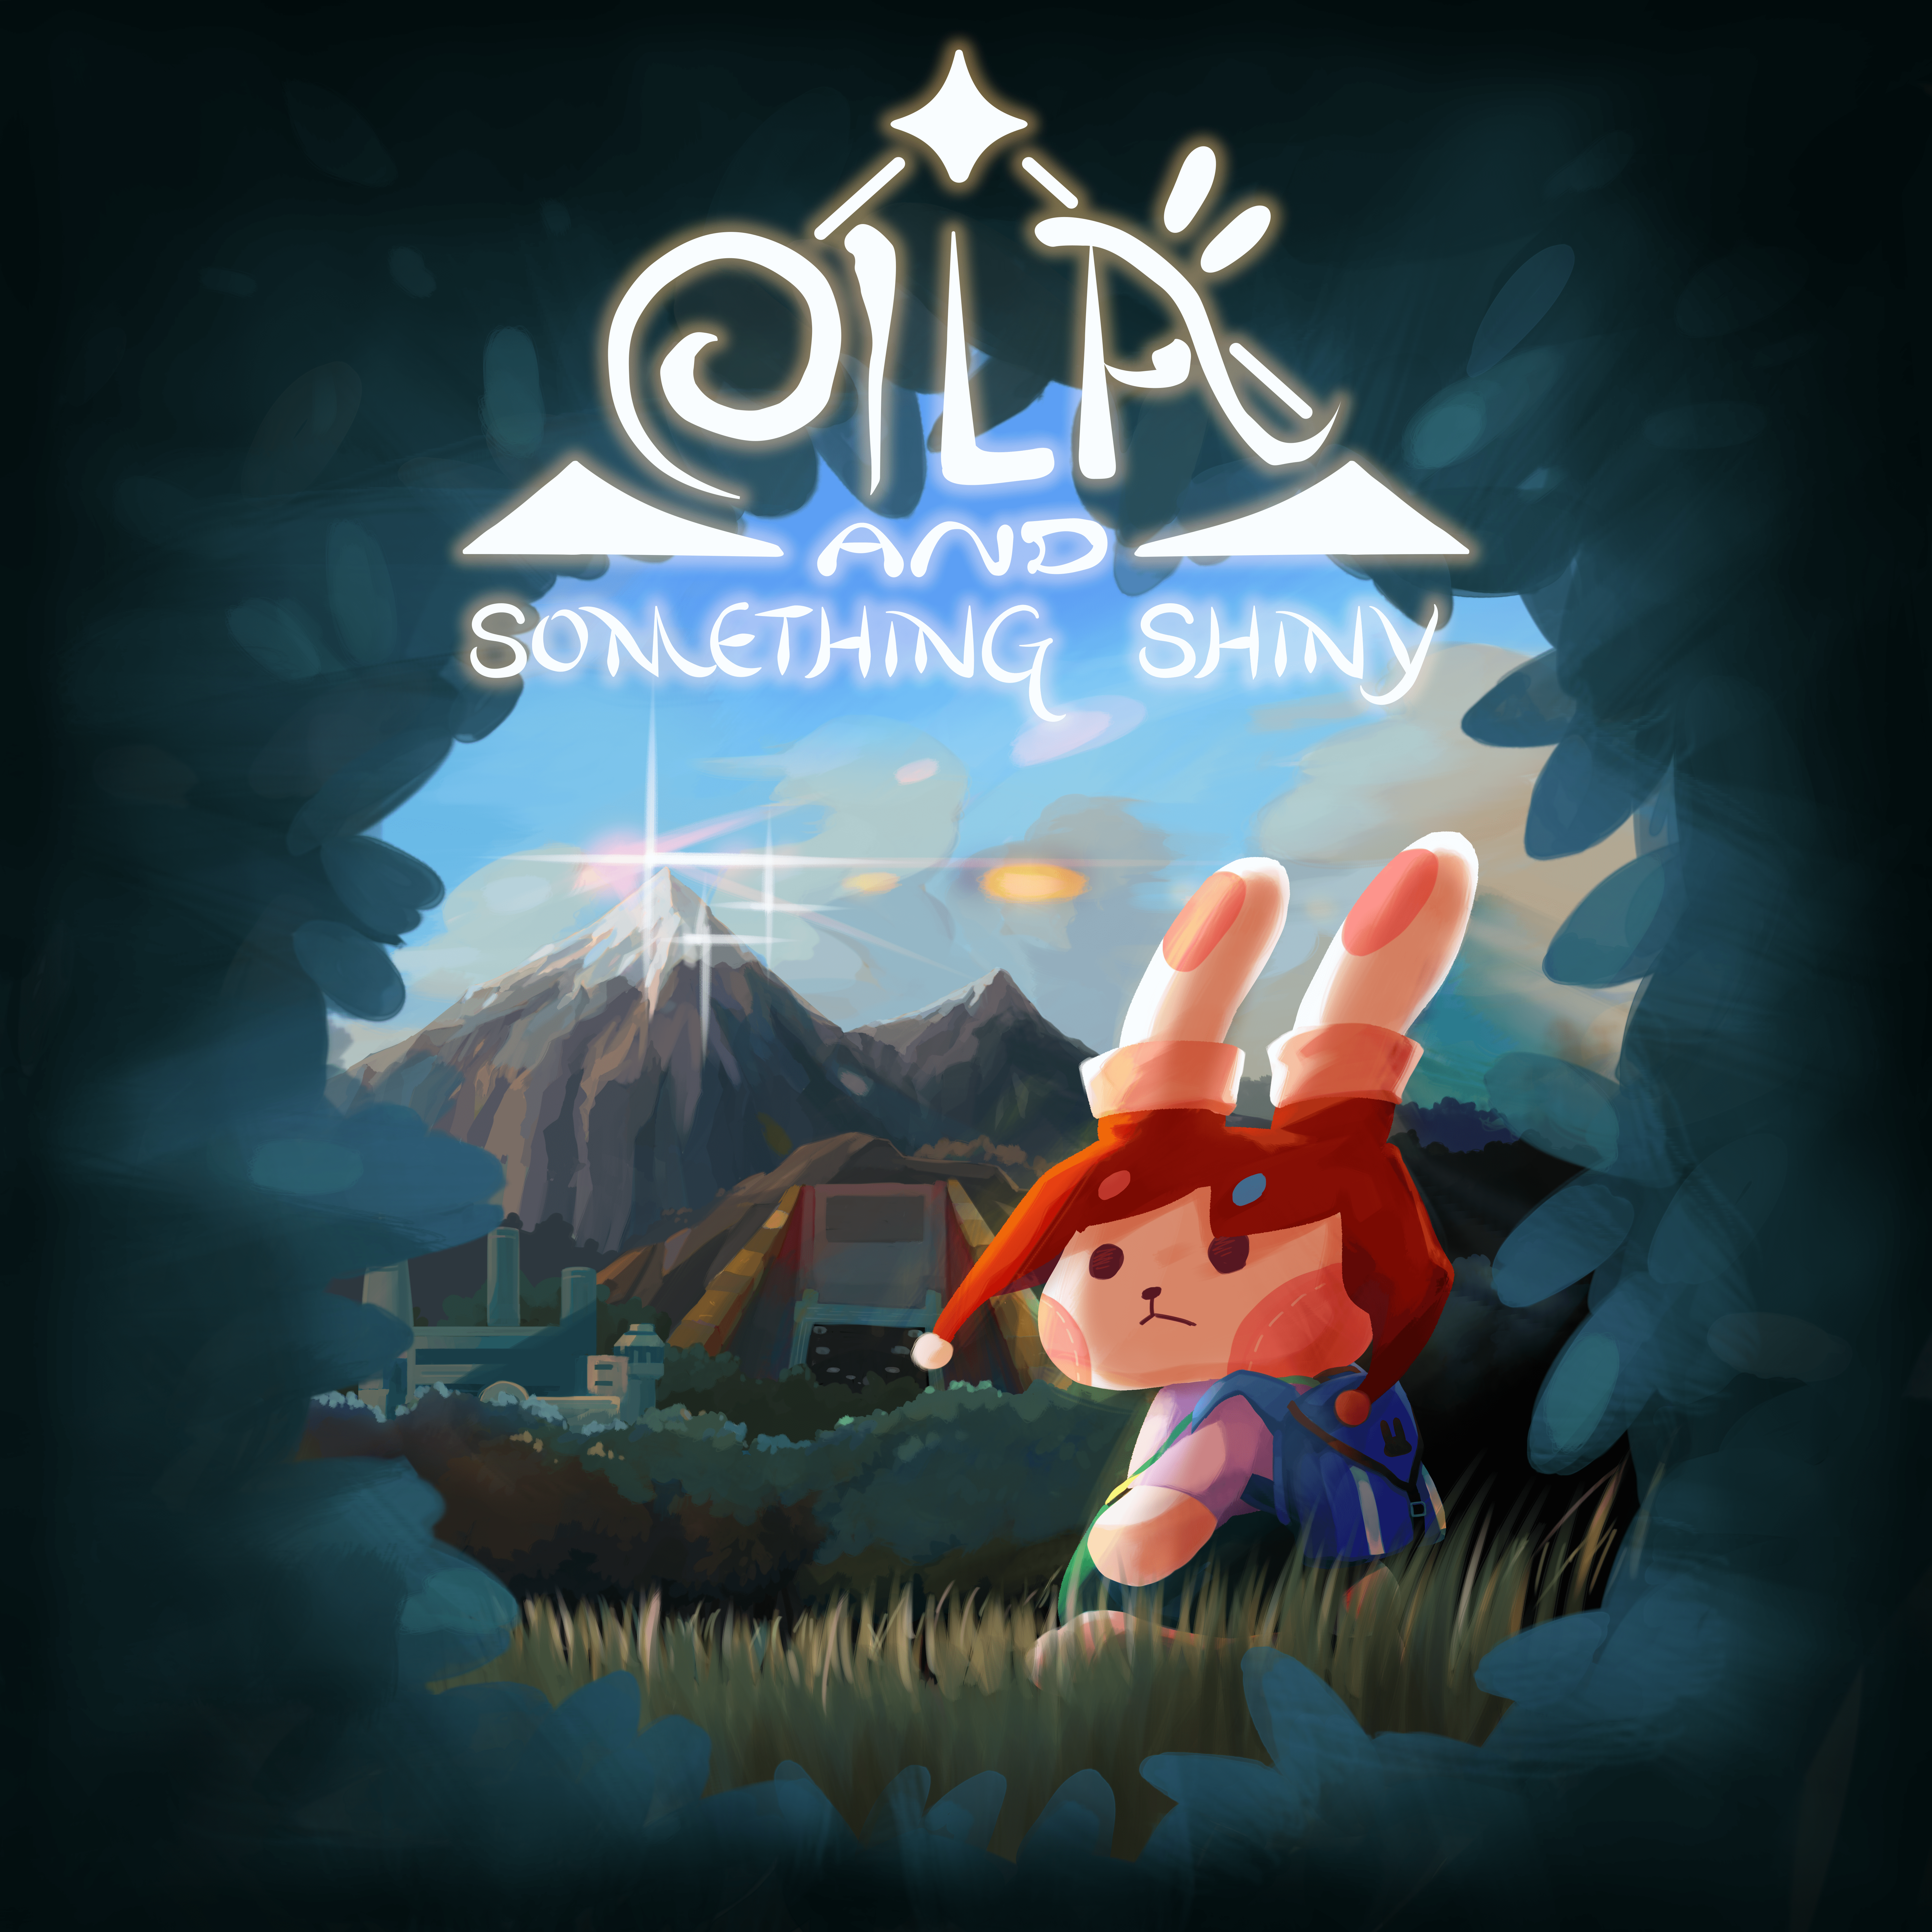 Main image for Eila and Something Shiny